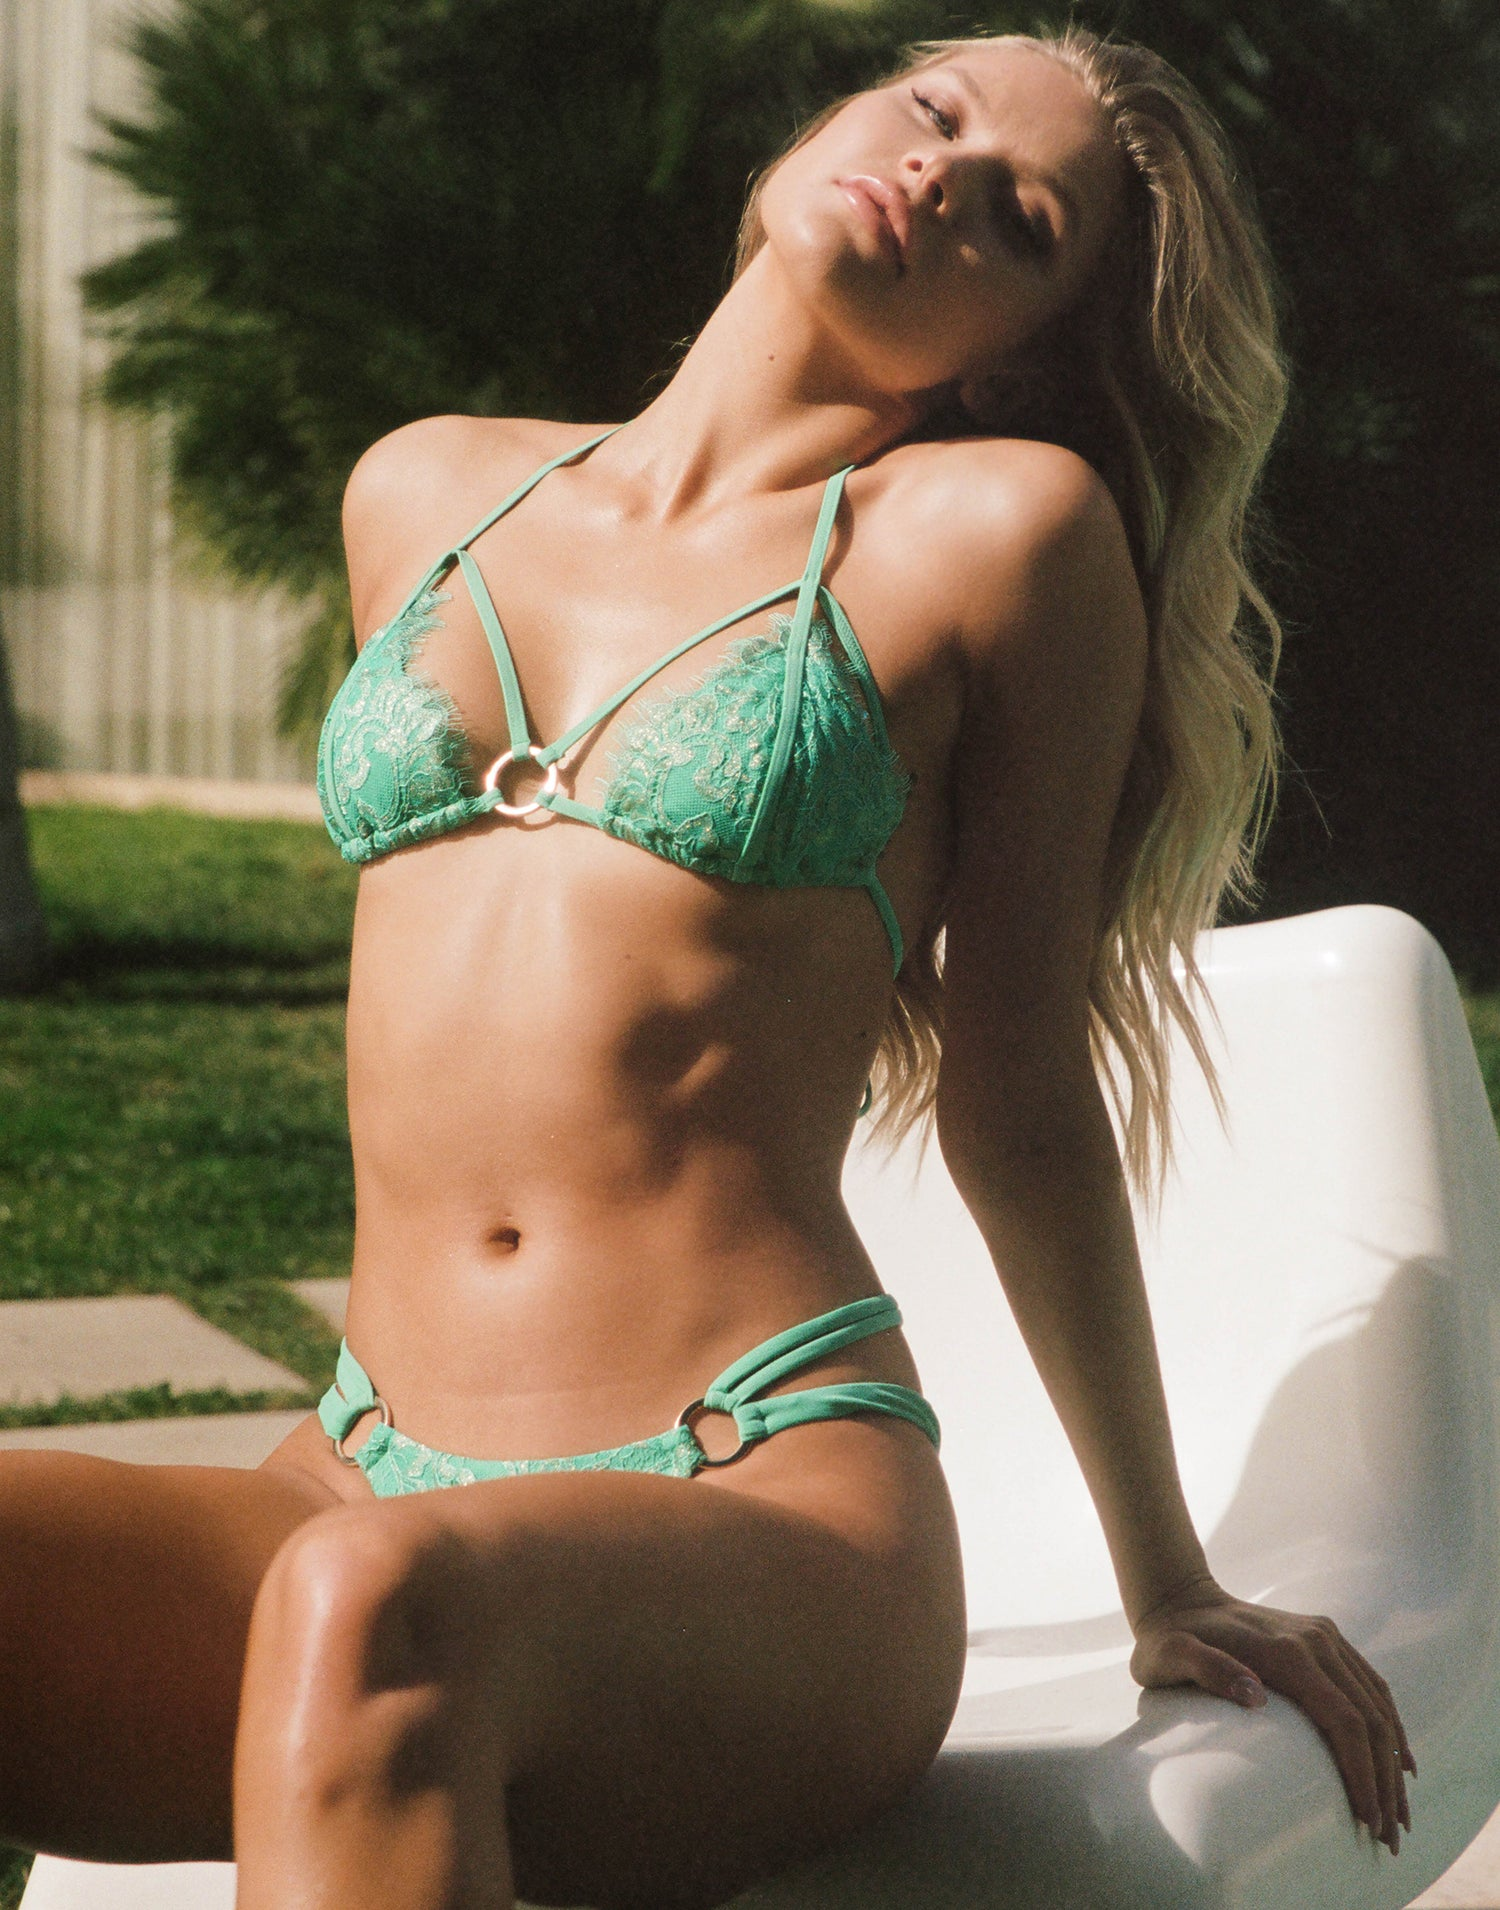 Gunpowder and Lace Triangle Bikini Top in Seafoam with Lace & Strappy Details - Alternate Front View / Summer 2021 Campaign - Josie Canseco